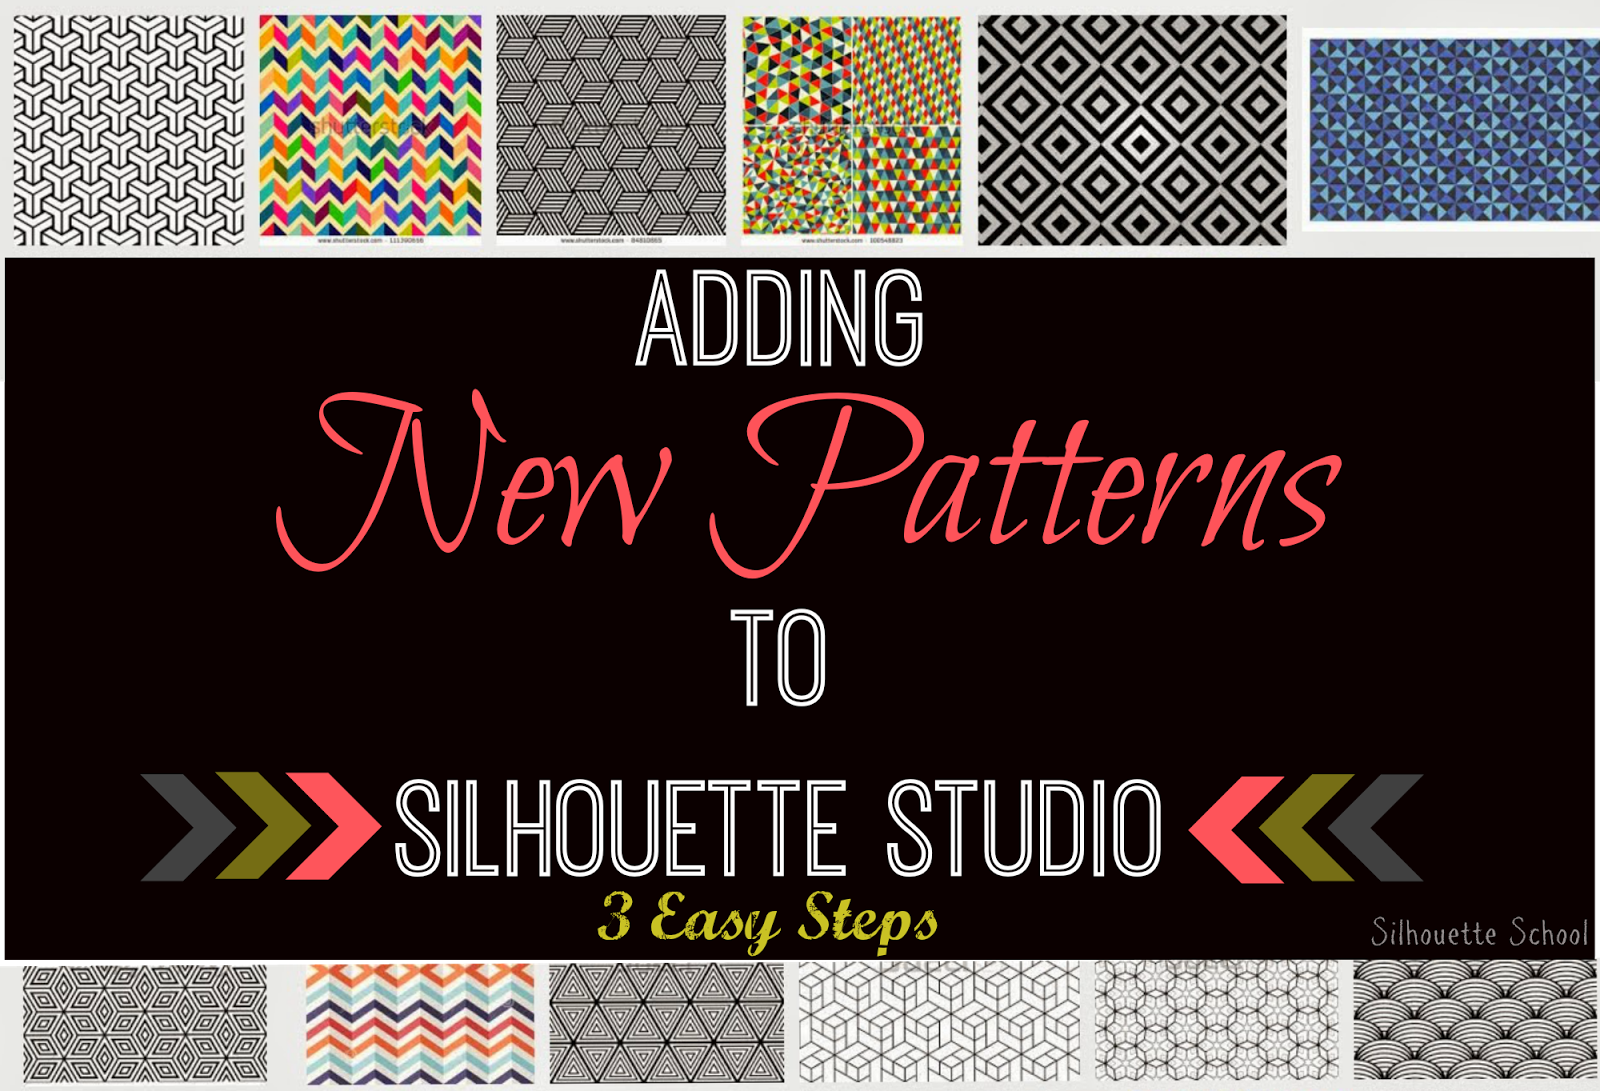 Patterns, adding, Silhouette Studio, easy steps